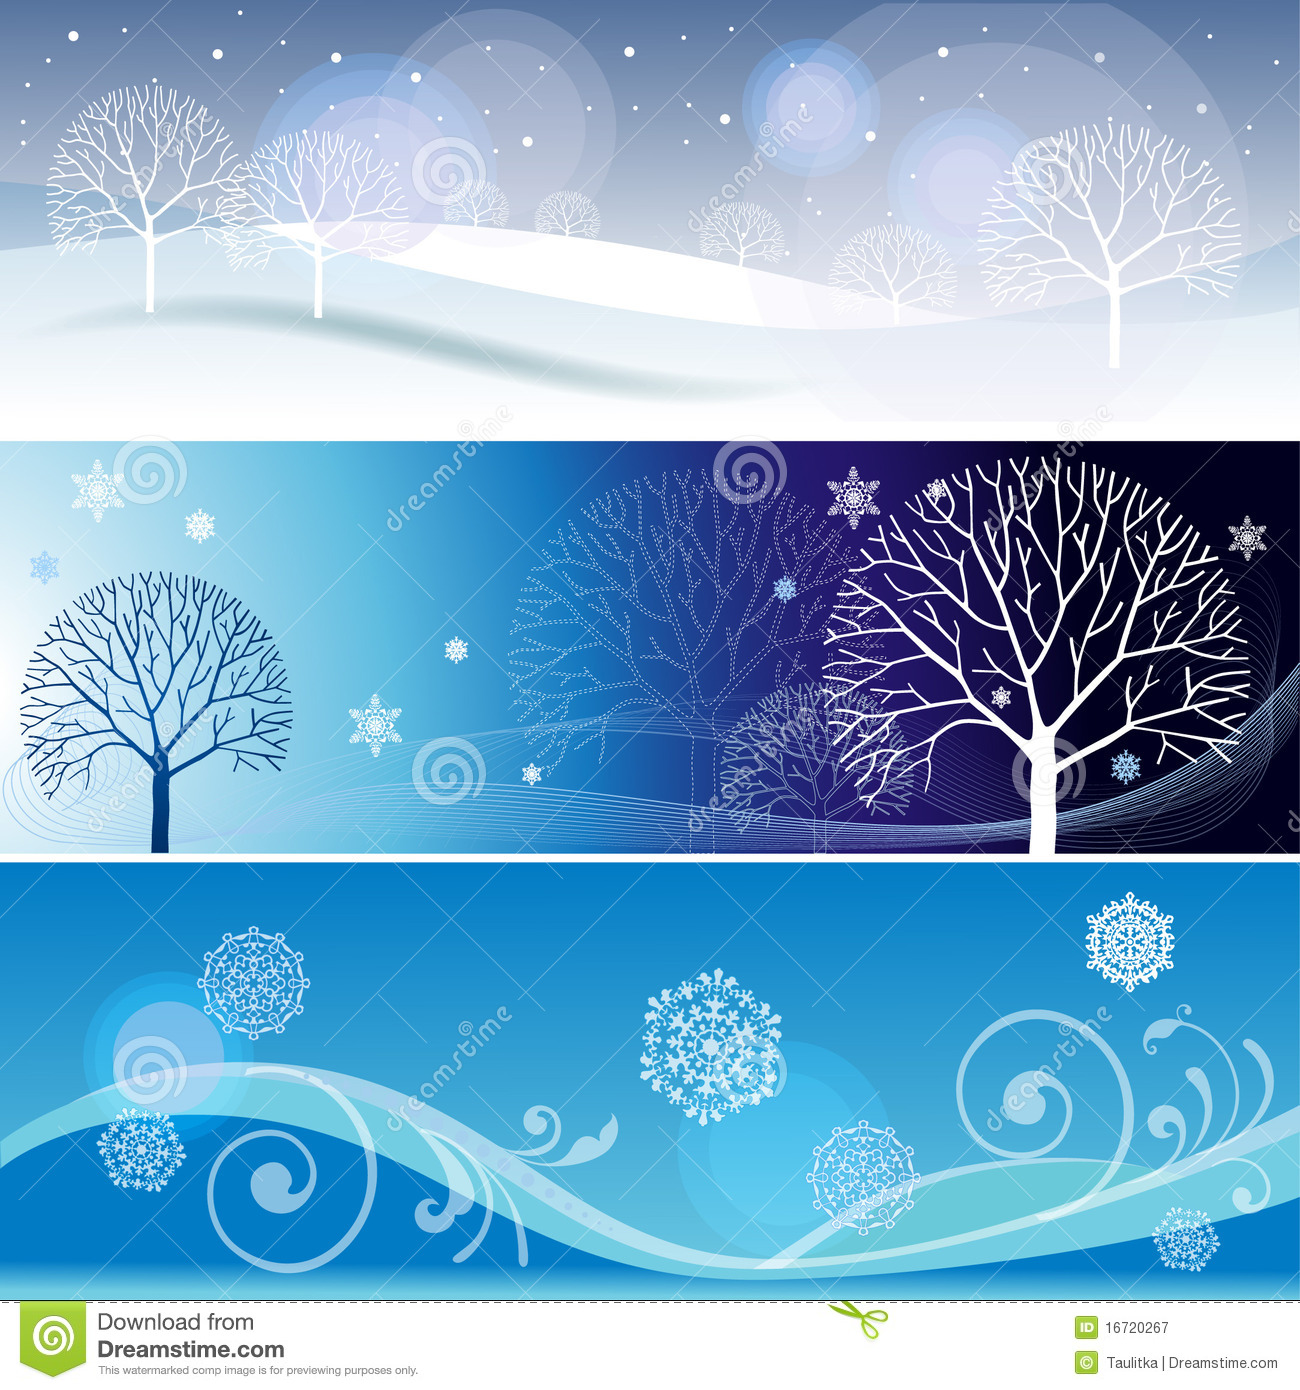 Three winter banners stock illustration. Image of banners ...